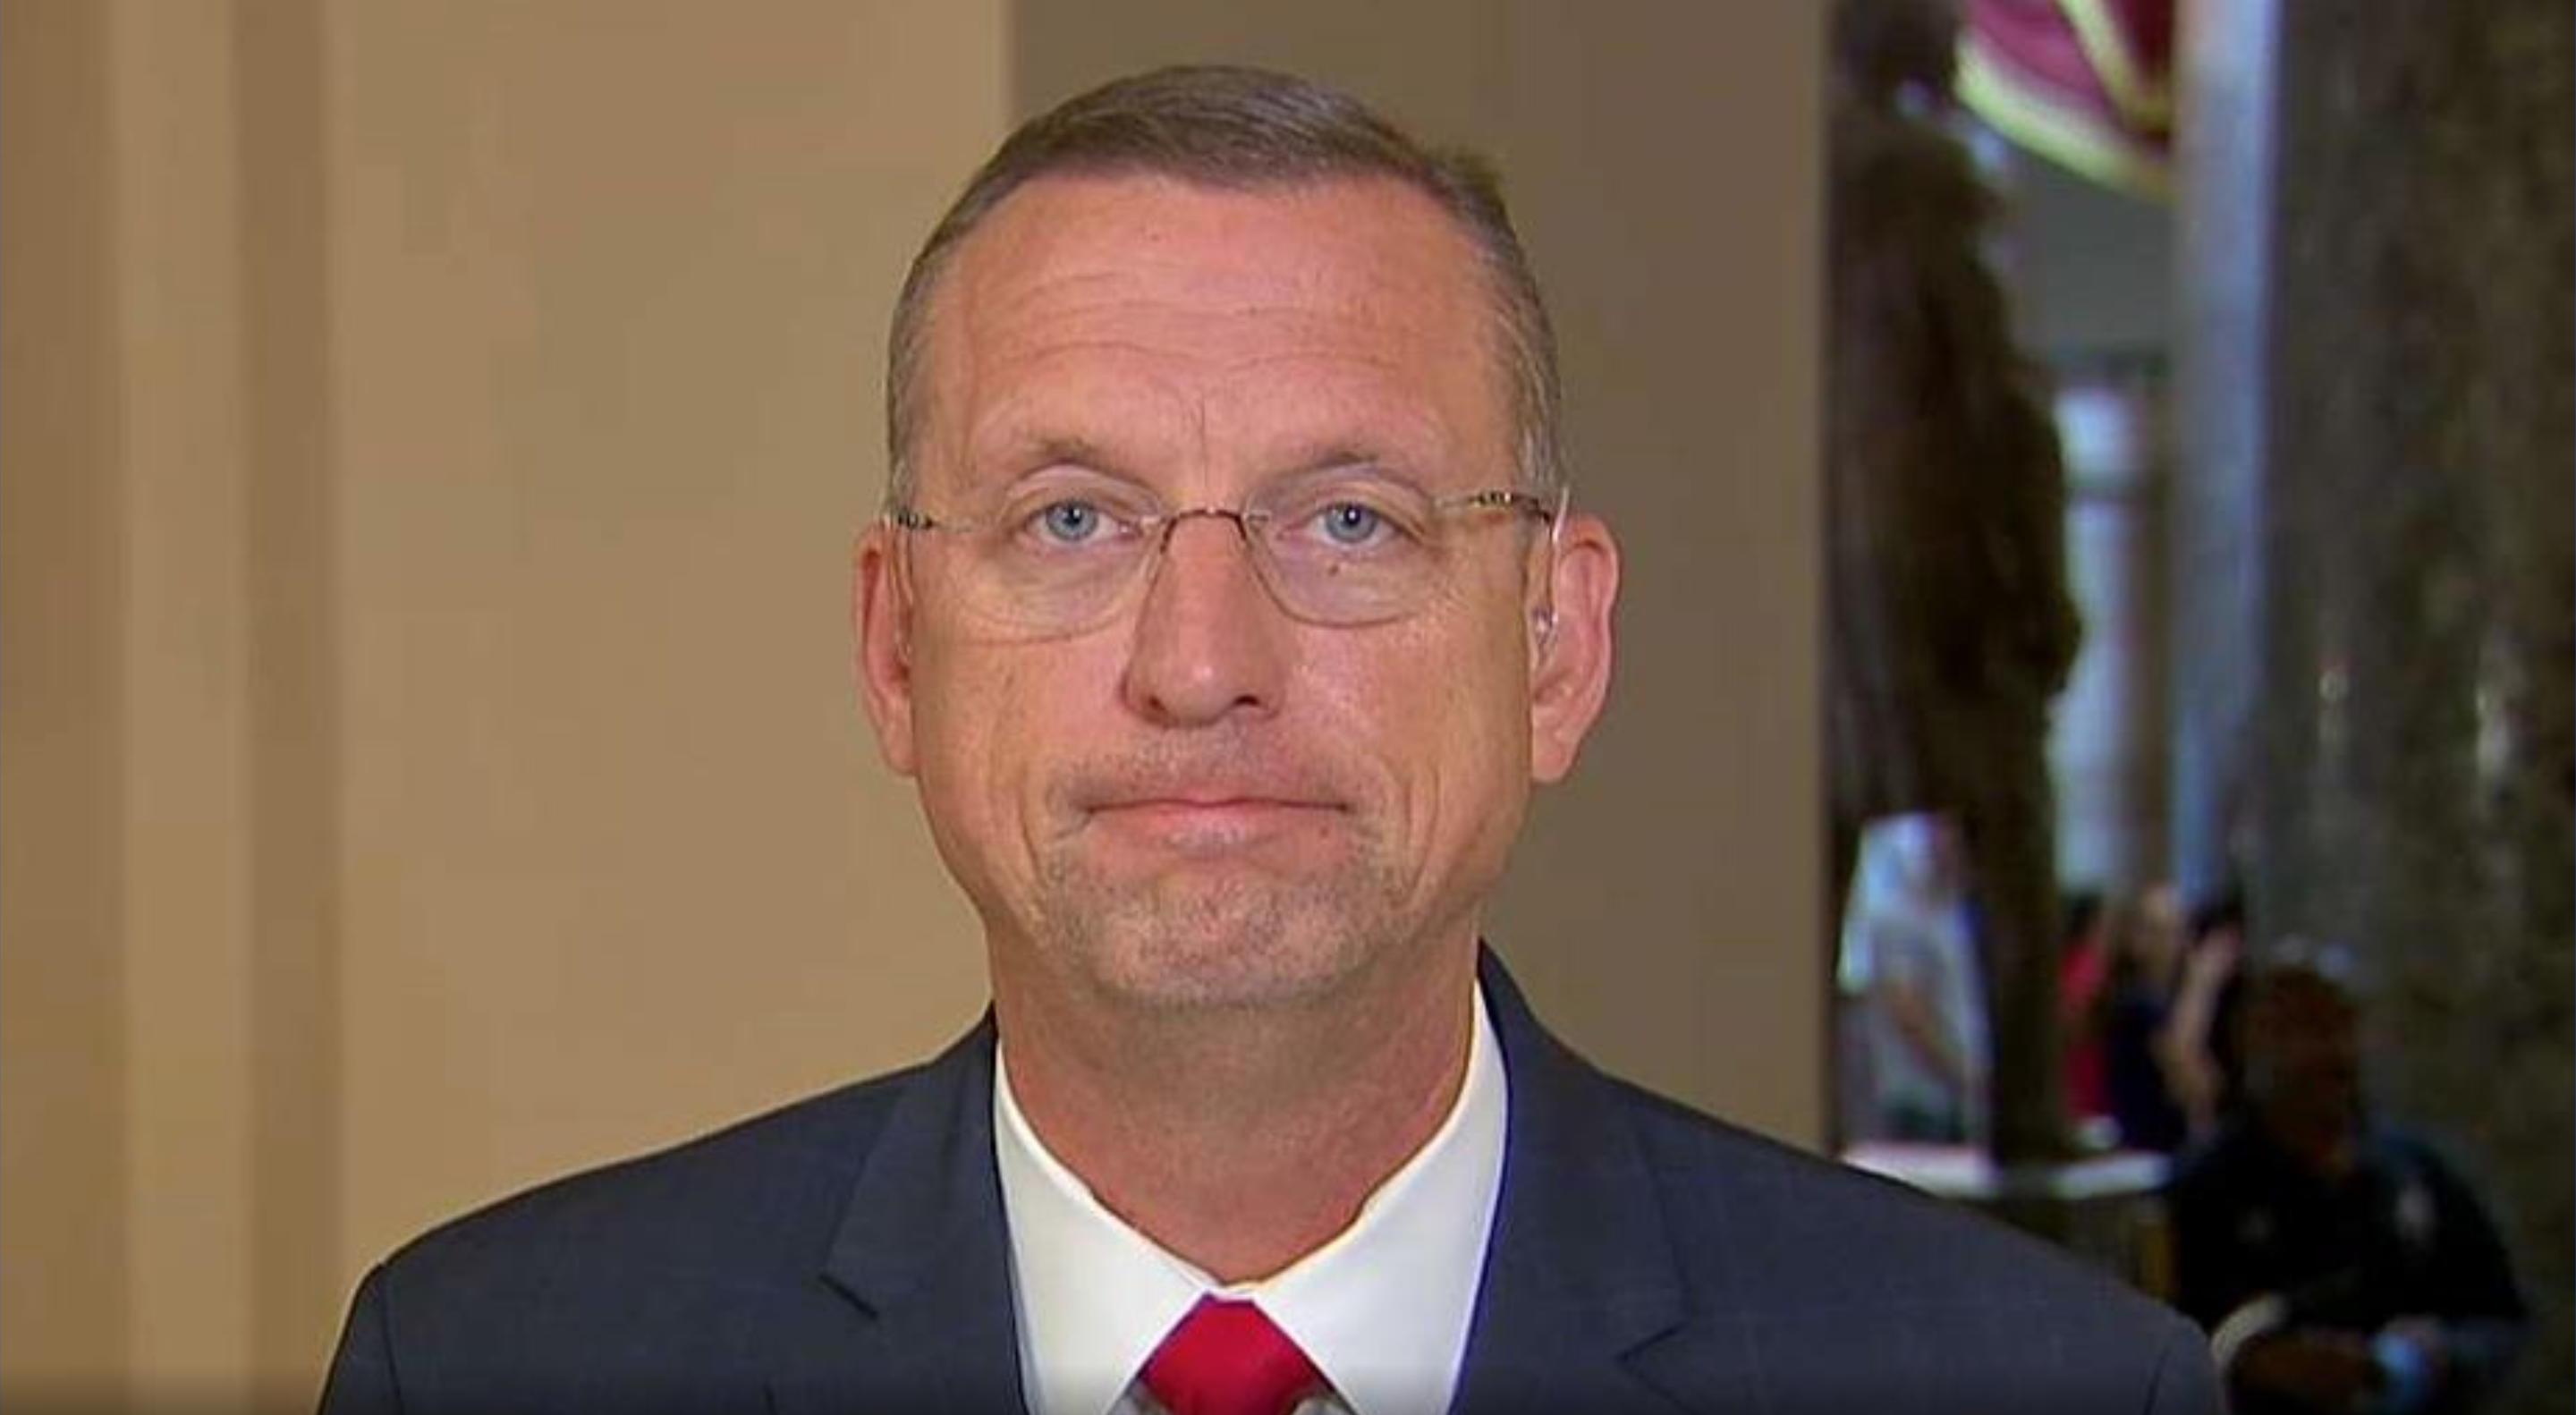 Westlake Legal Group Screen-Shot-2019-09-10-at-11.46.20-AM Rep. Doug Collins calls for investigation into CNN report on CIA extracting spy out of Russia Joshua Nelson fox-news/shows/americas-newsroom fox-news/media/fox-news-flash fox news fnc/media fnc f5a13030-bece-529b-9083-f08795b33689 article